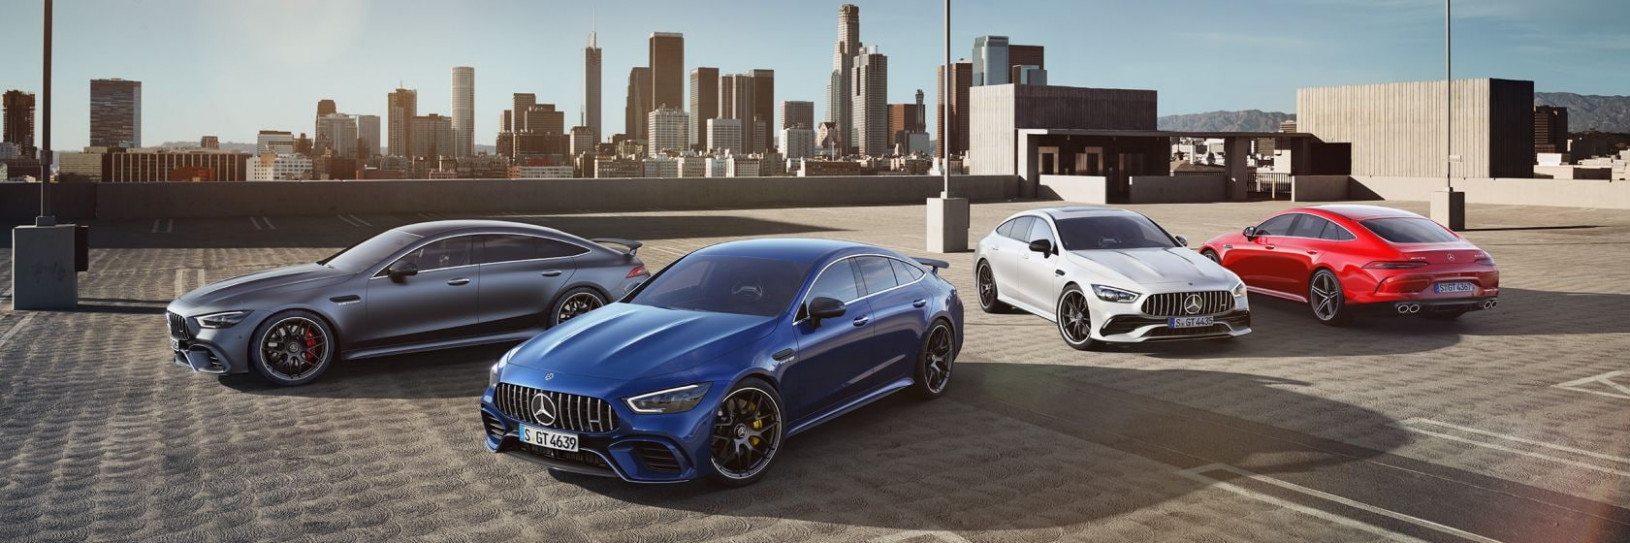 Mercedes-AMG GT 8-Türer Coupé - Inspiration - 2020 mercedes amg gt 4 door coupe